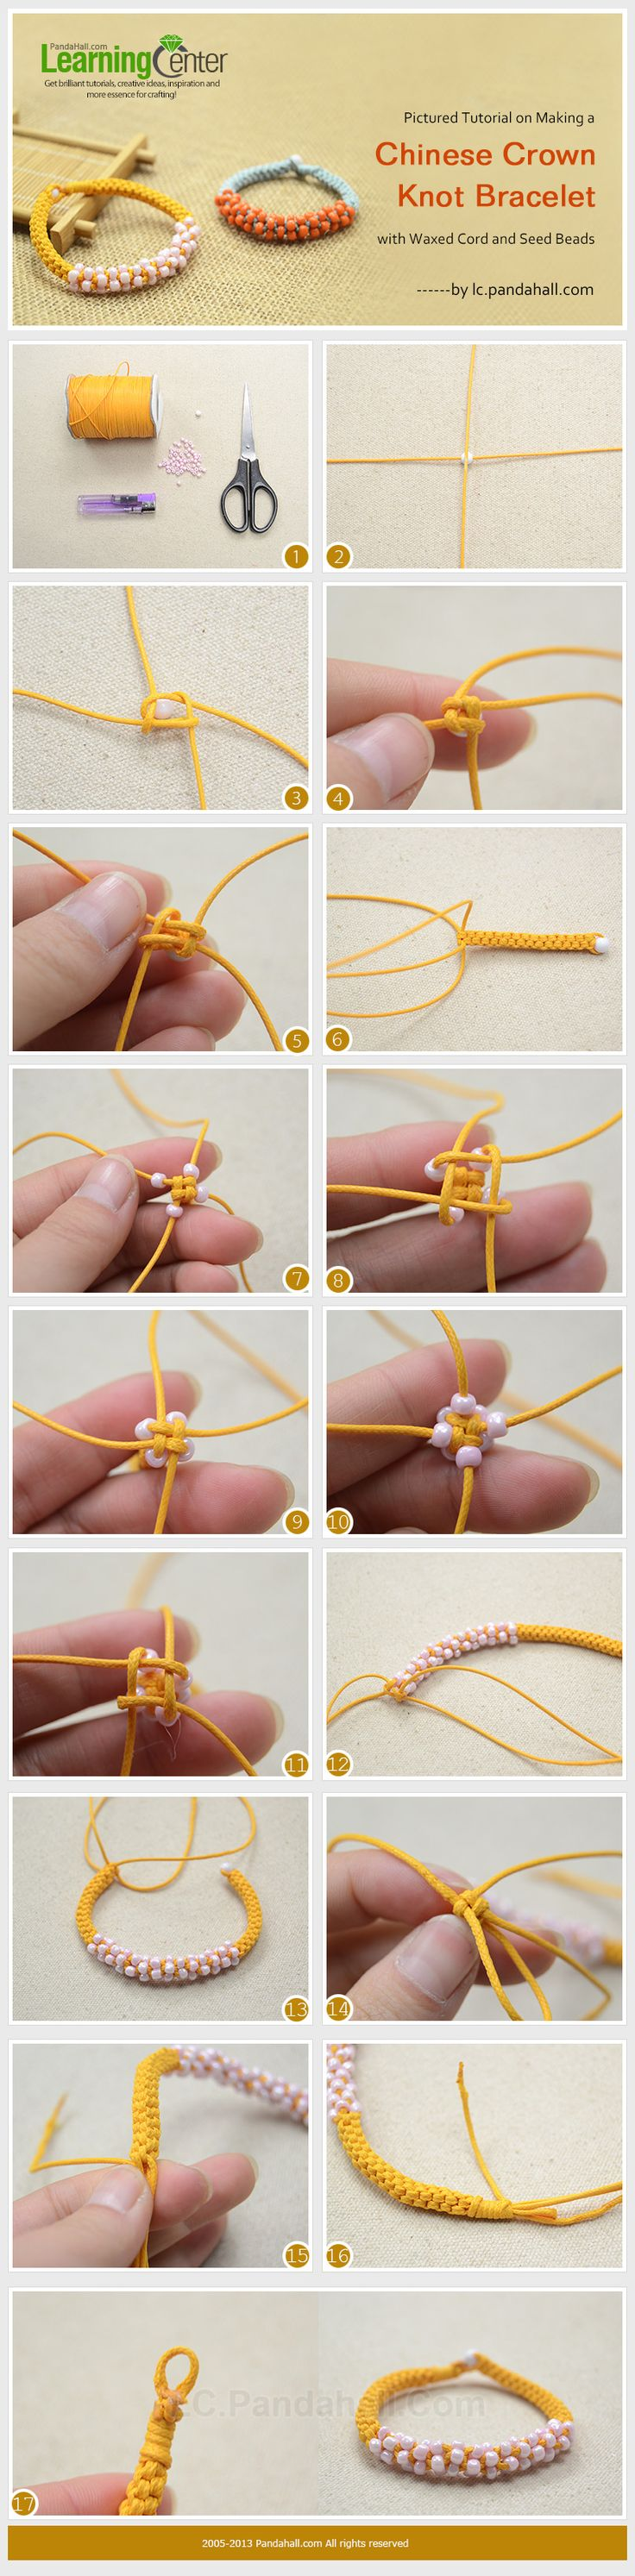 Emmy DE * Pictured Tutorial on Making a Chinese Crown Knot Bracelet with Waxed Cord and Seed Beads